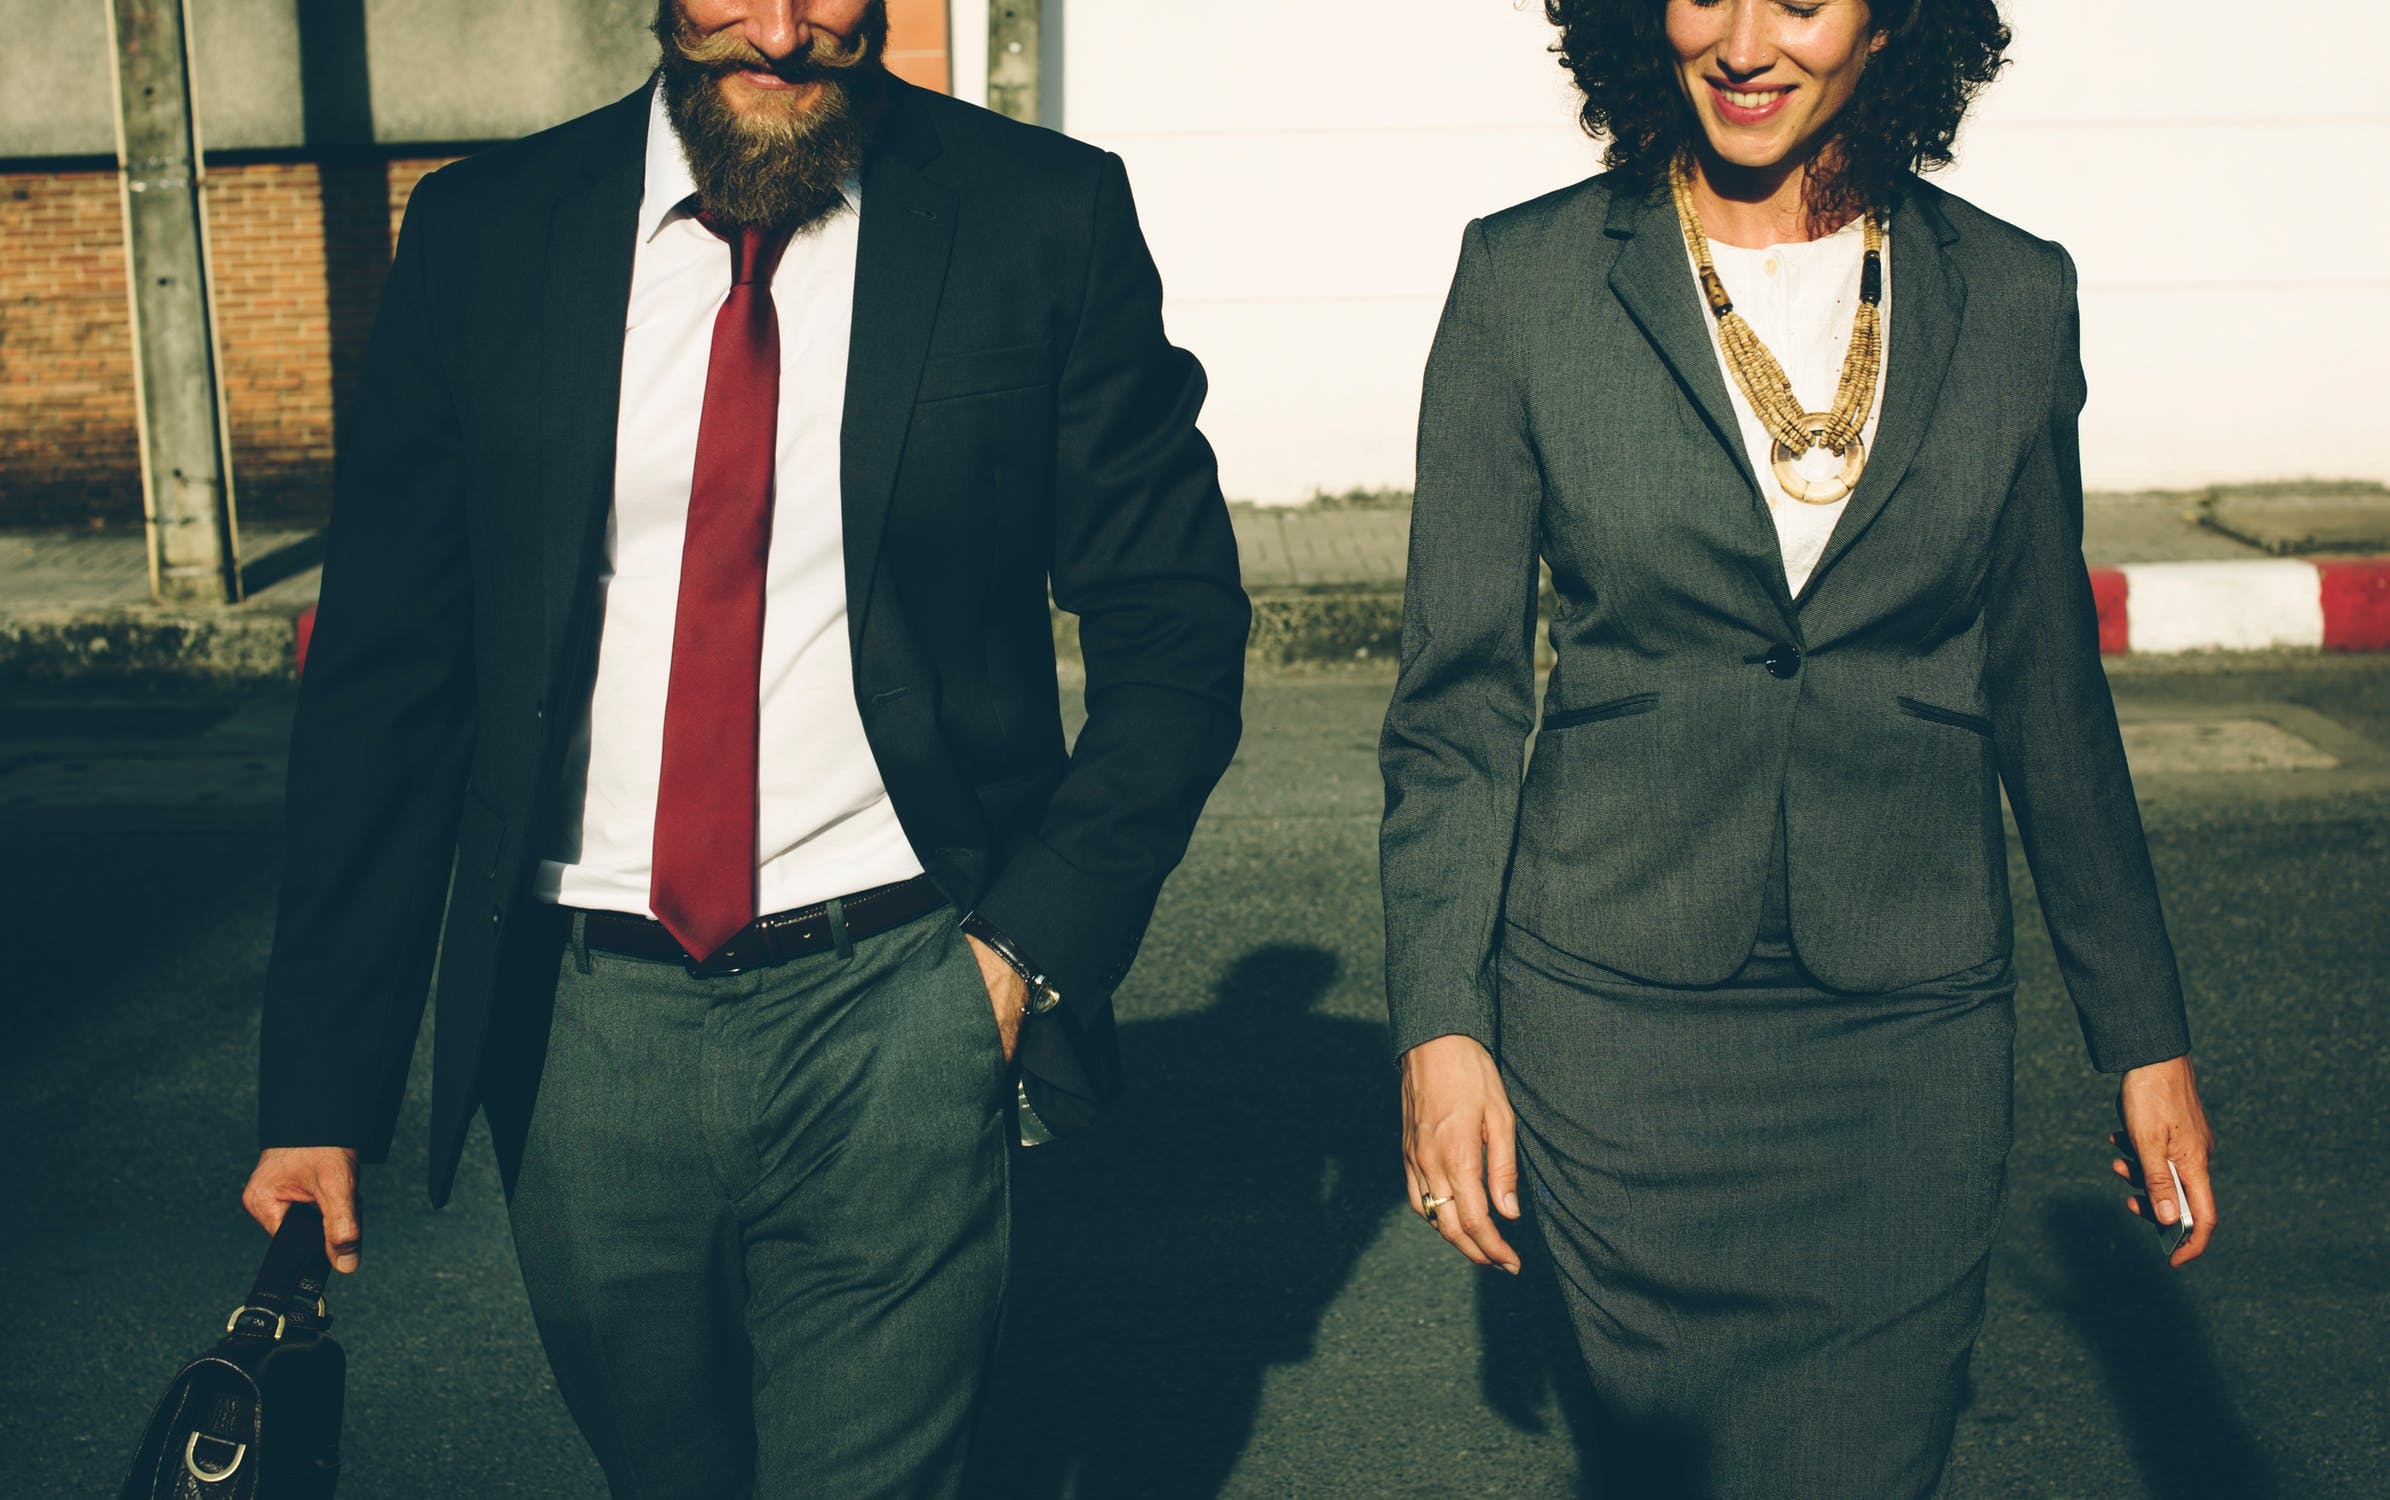 Interpersonal communication skills matter in sales, job interviews, and business success.